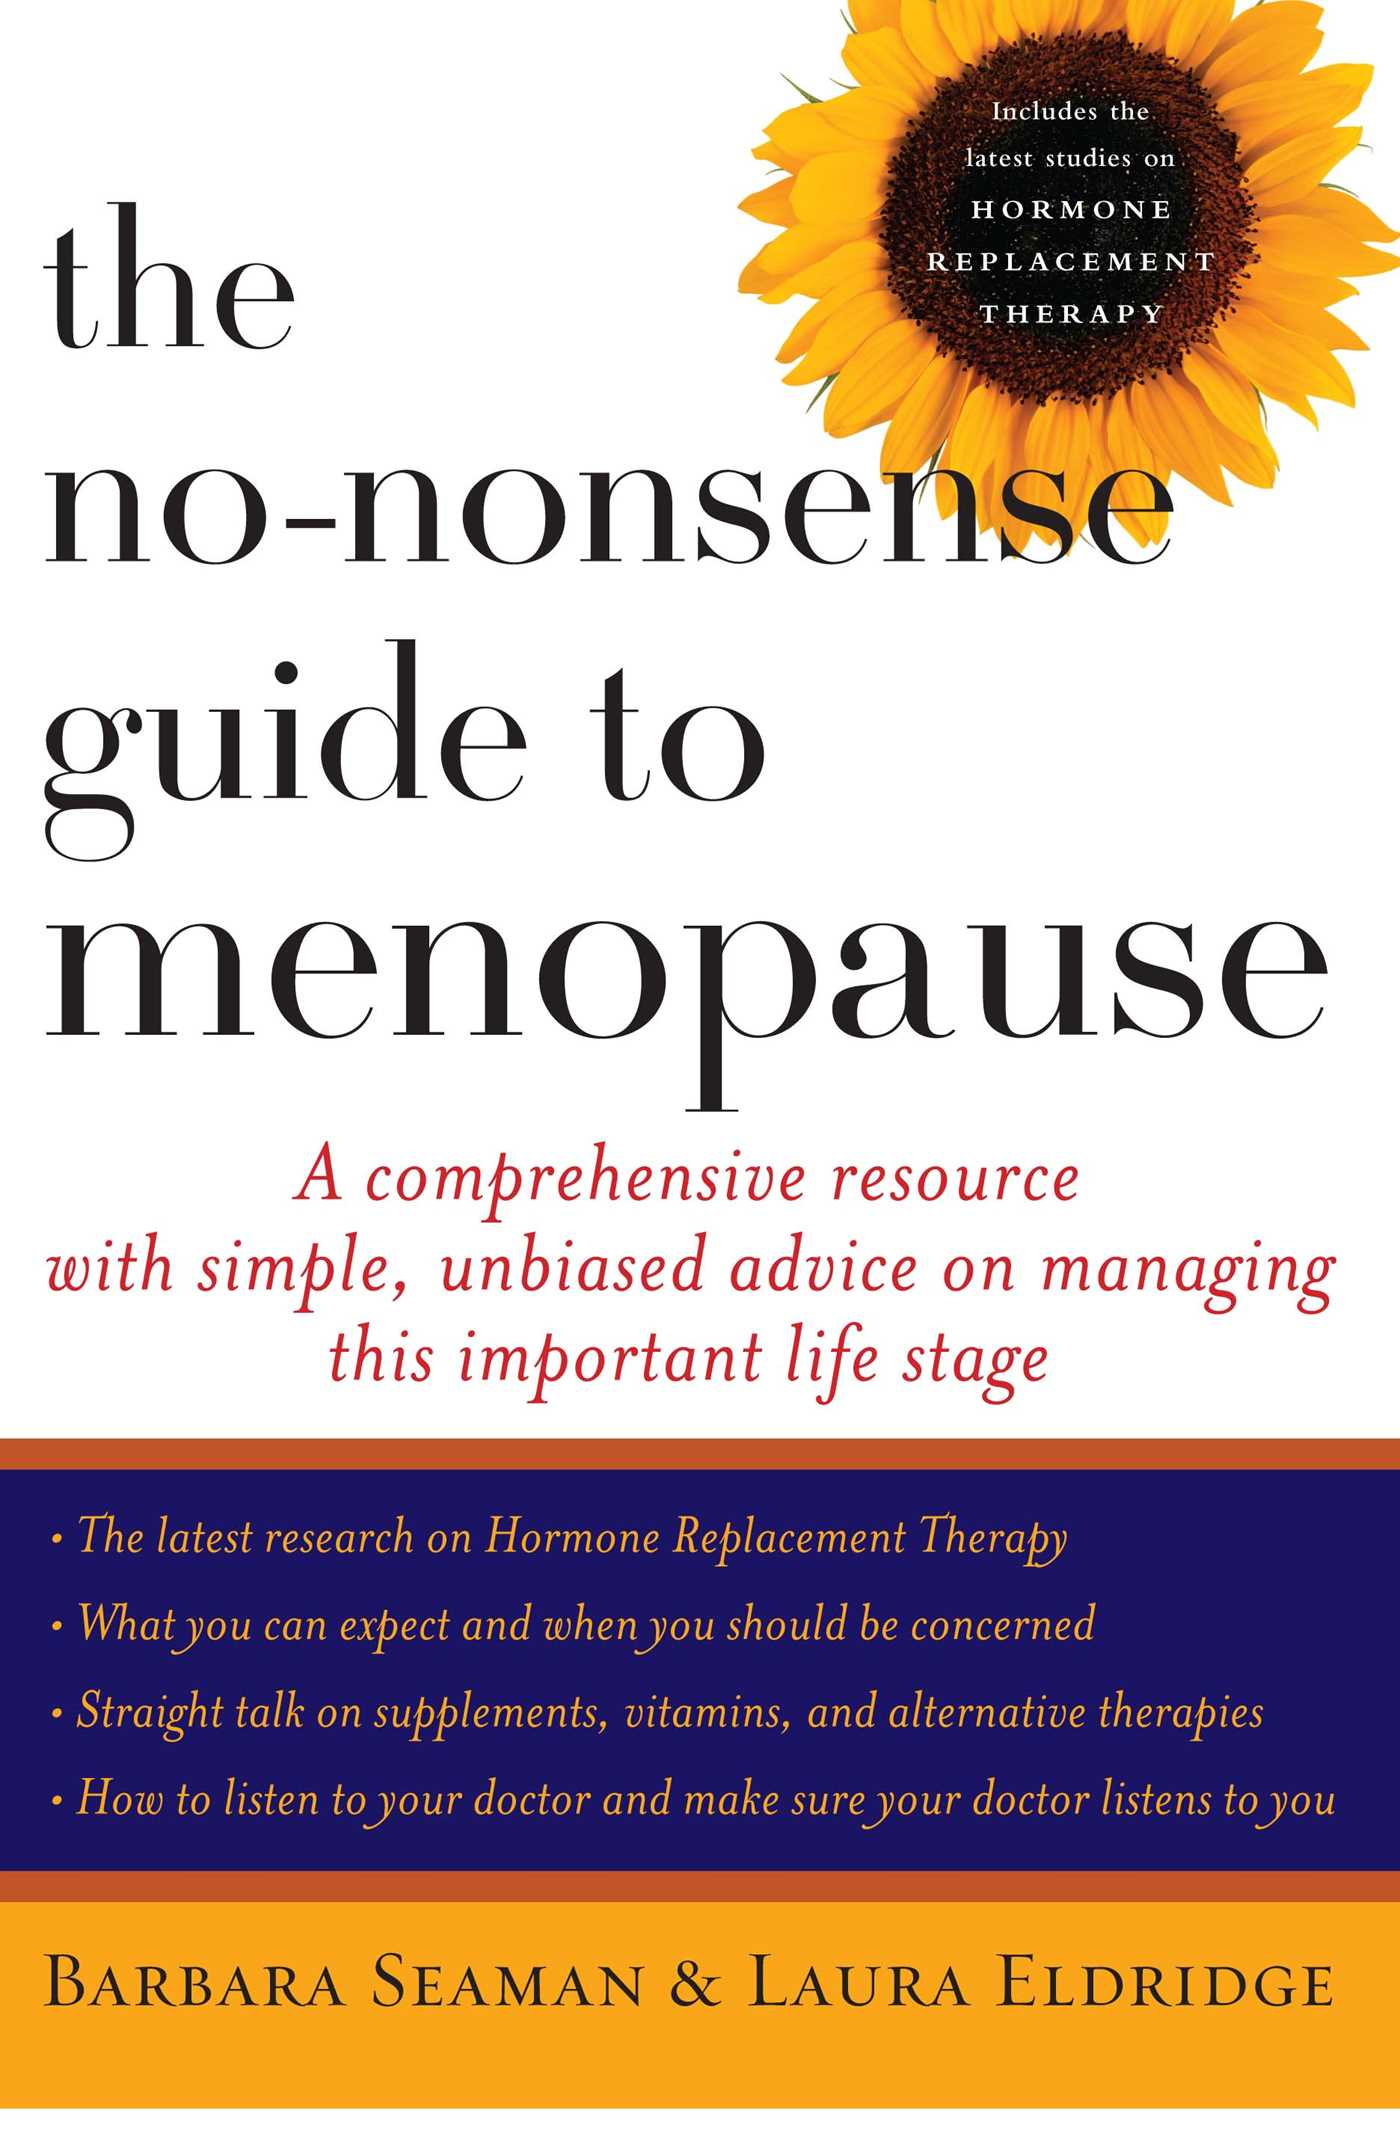 The No-Nonsense Guide to Menopause